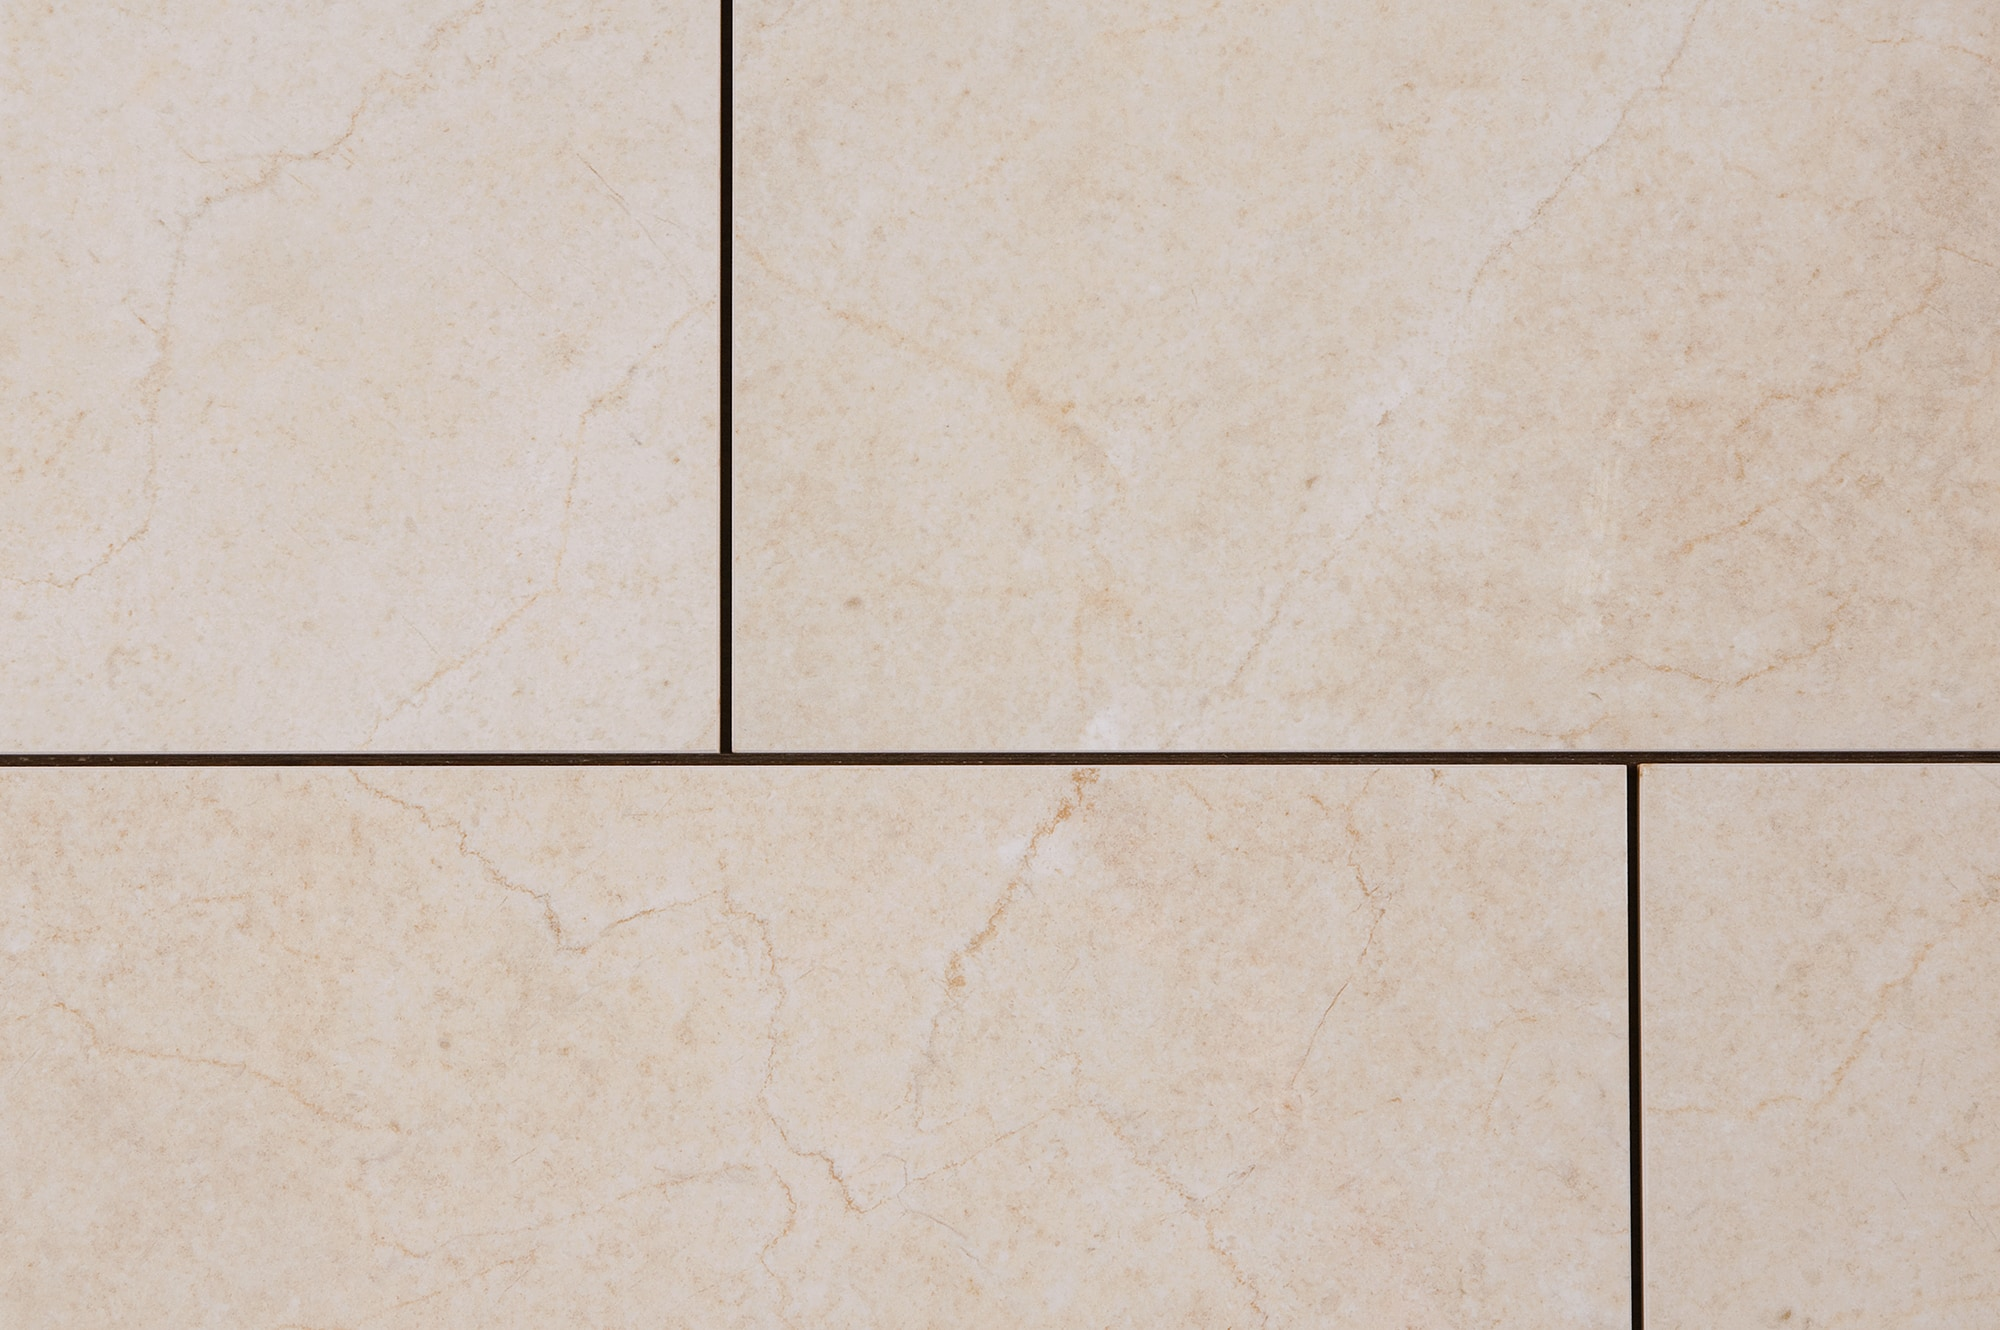 Flooring Ceramic Porcelain Tile All Products Crema Marfil Polished